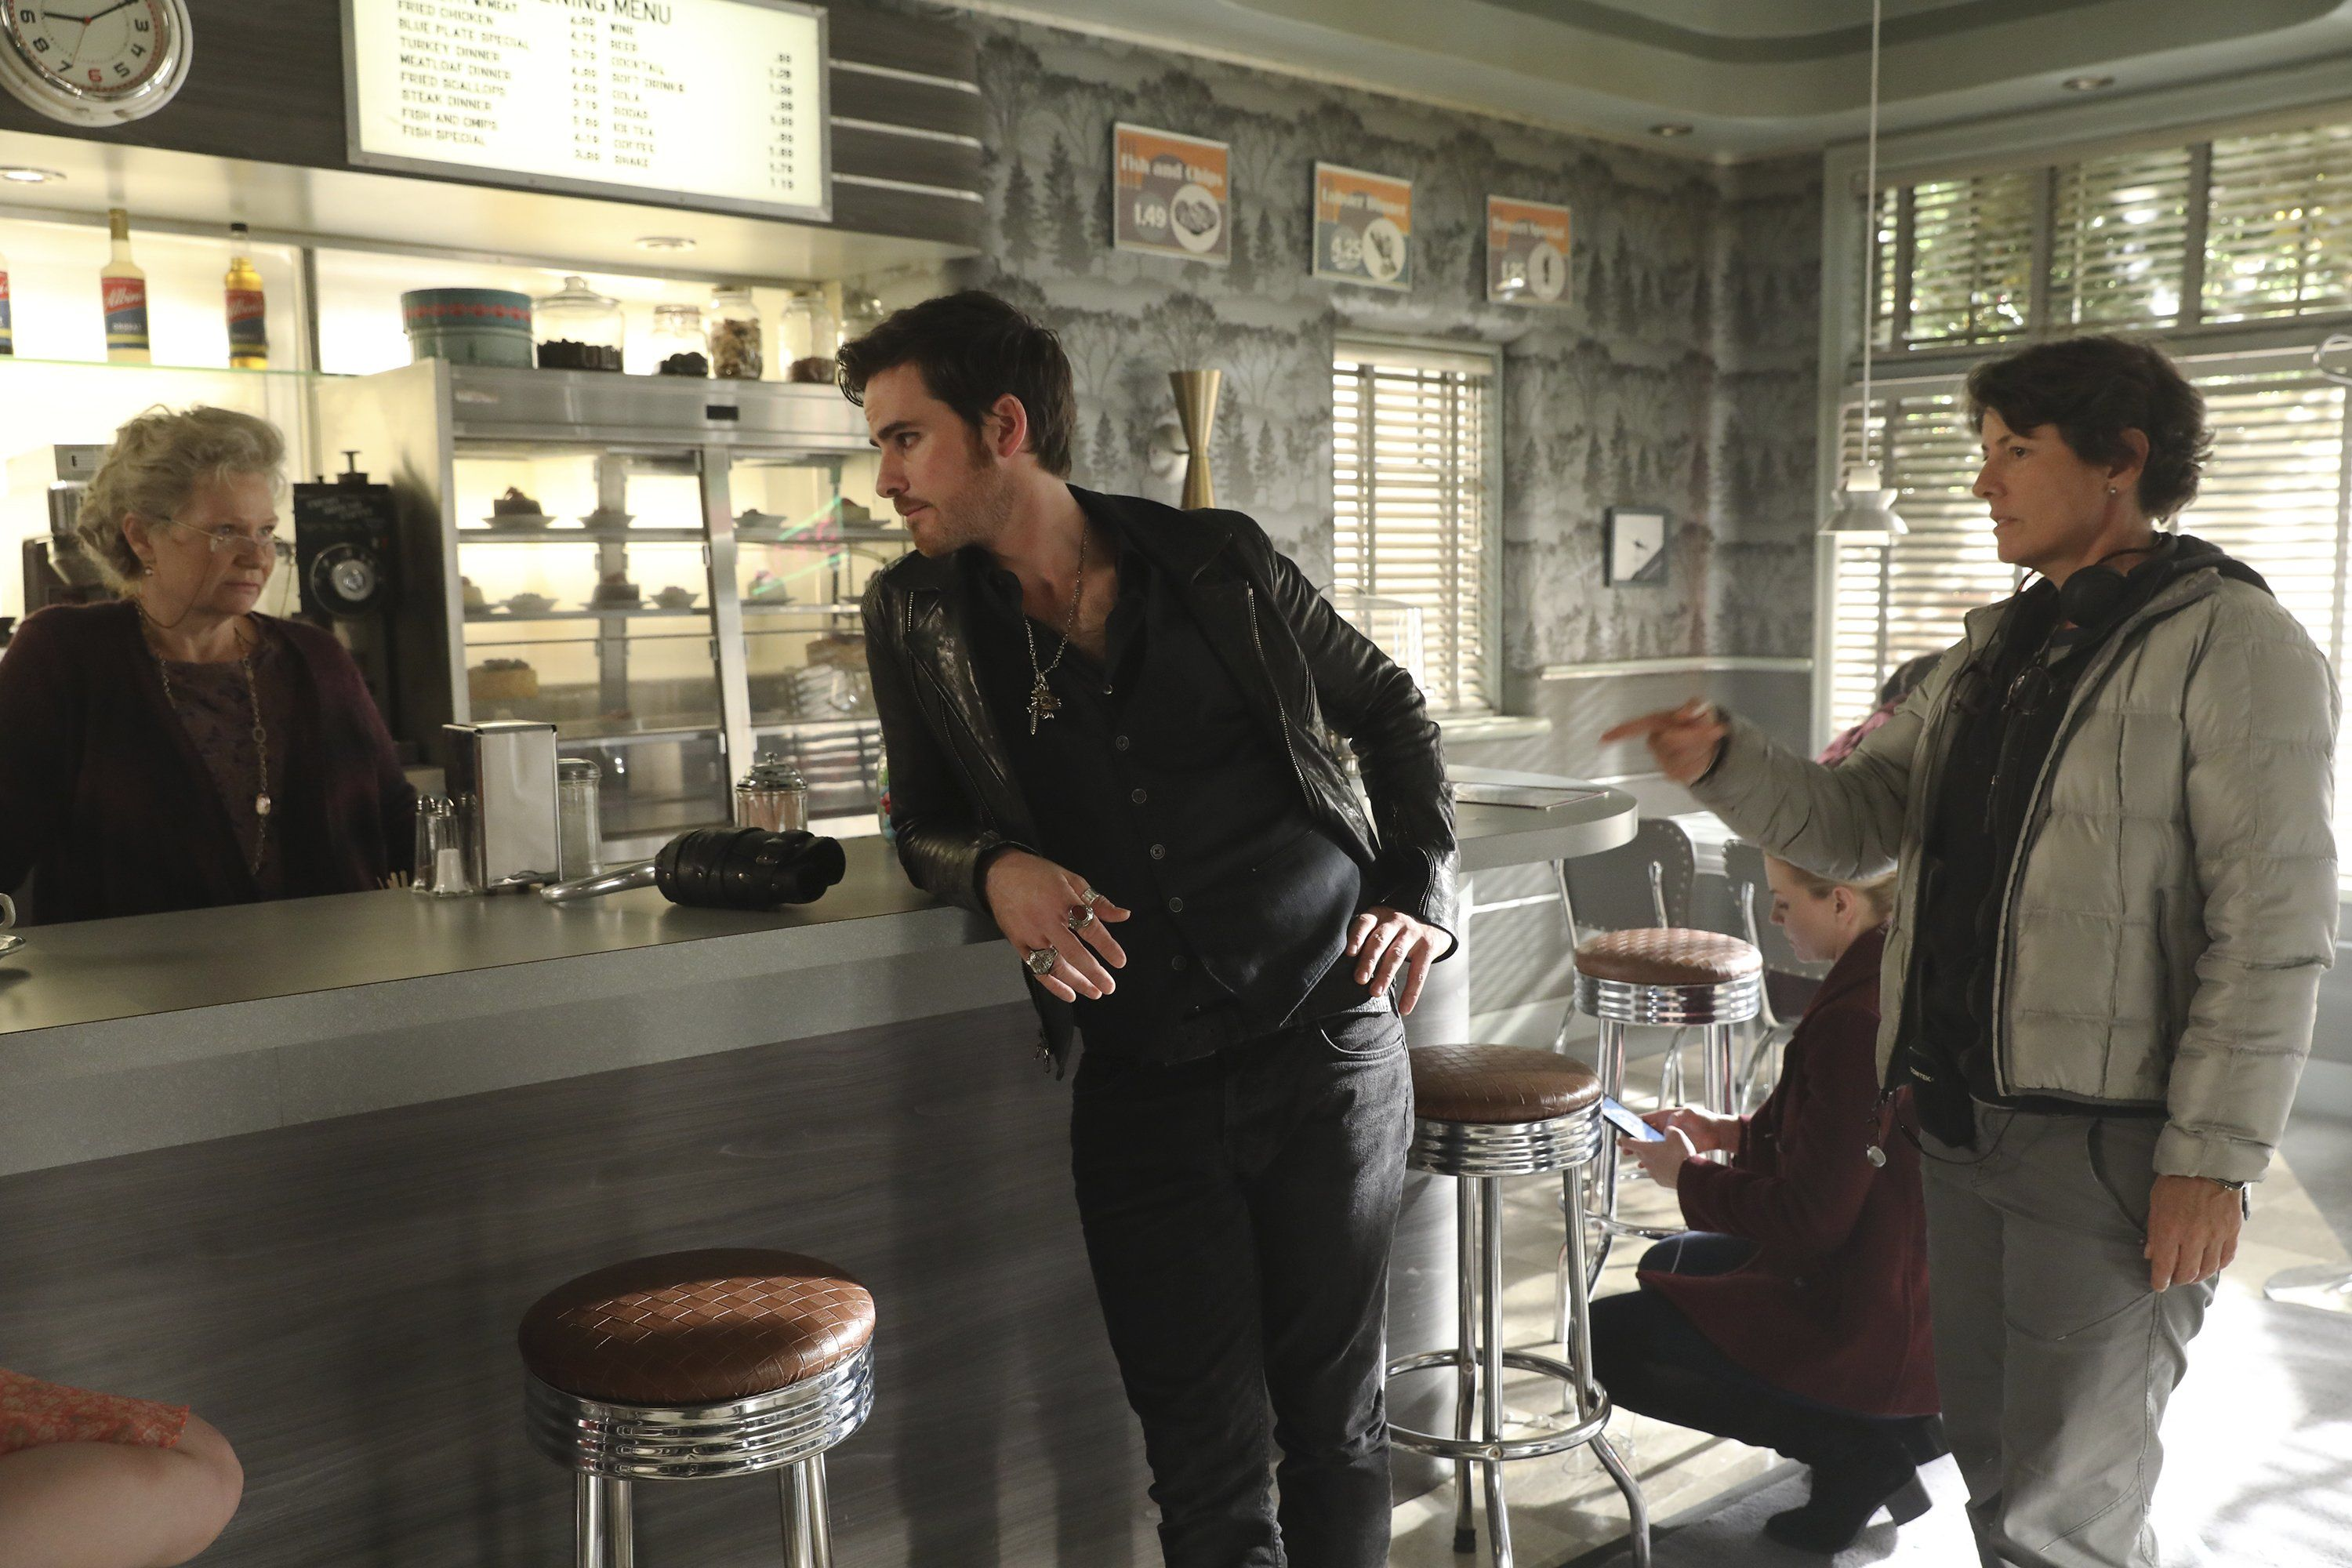 """Beverly, Colin O'Donoghue and Jennifer Morrison - Behind the scenes - 6 * 9 """"Changlings"""""""